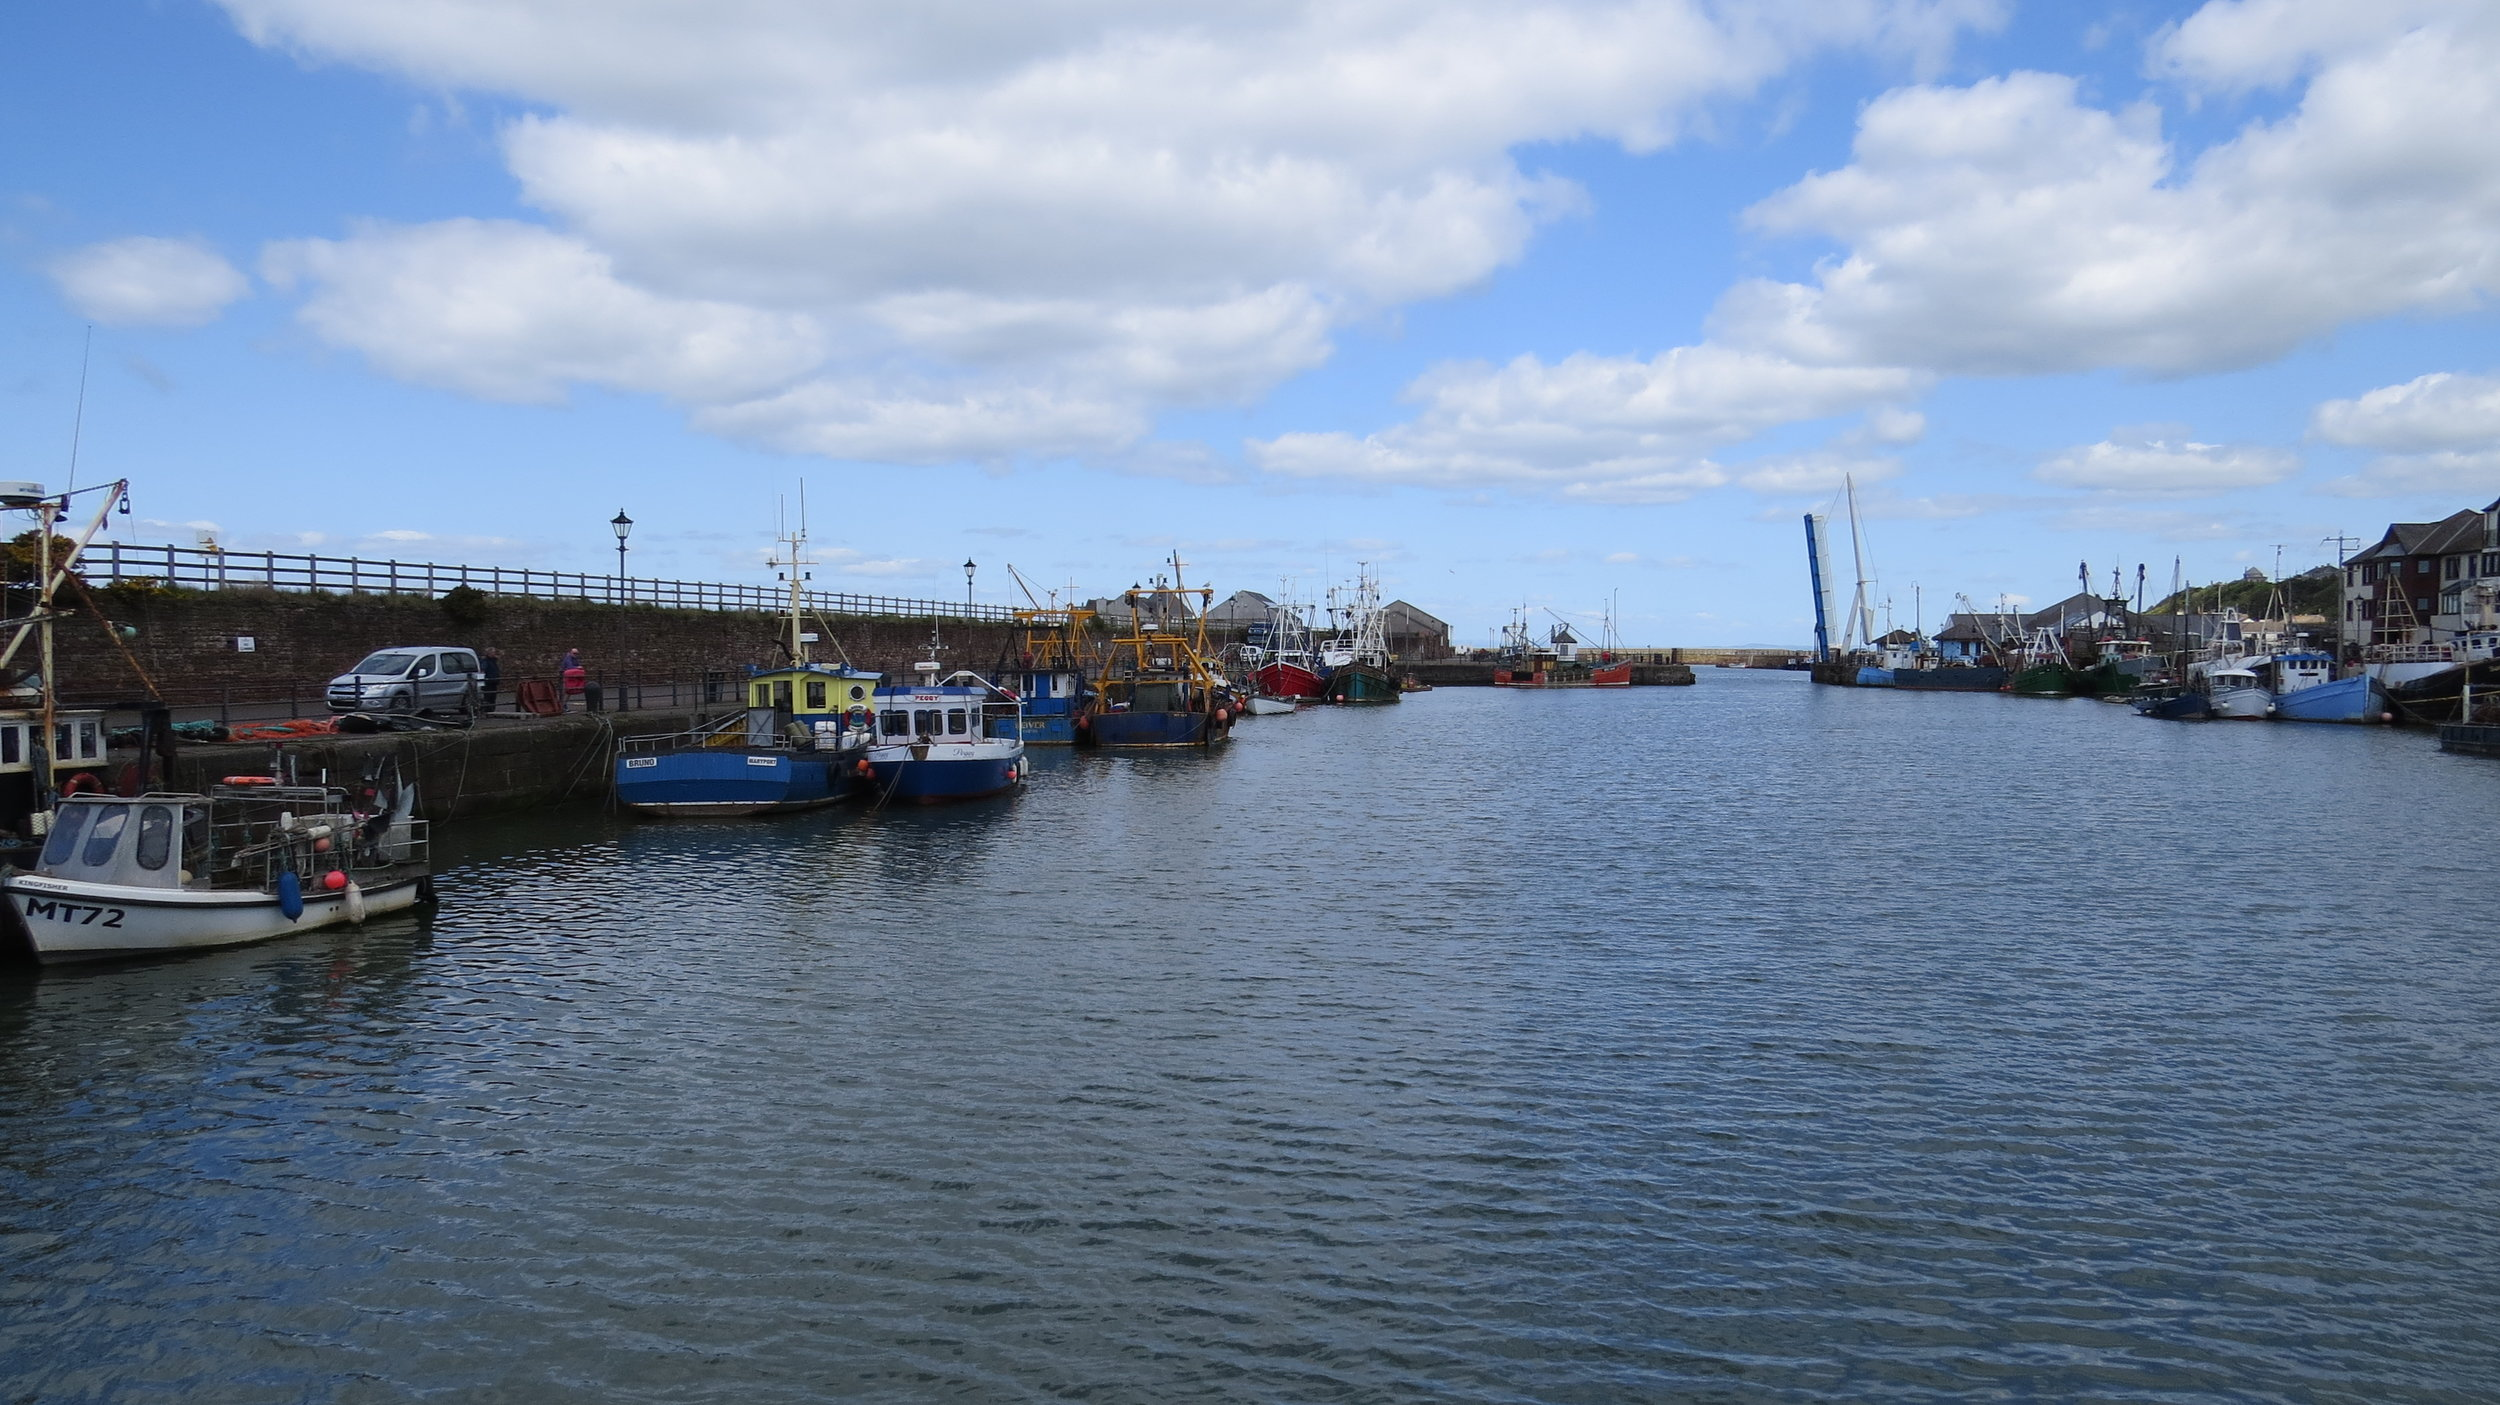 Maryport Fishing Harbour